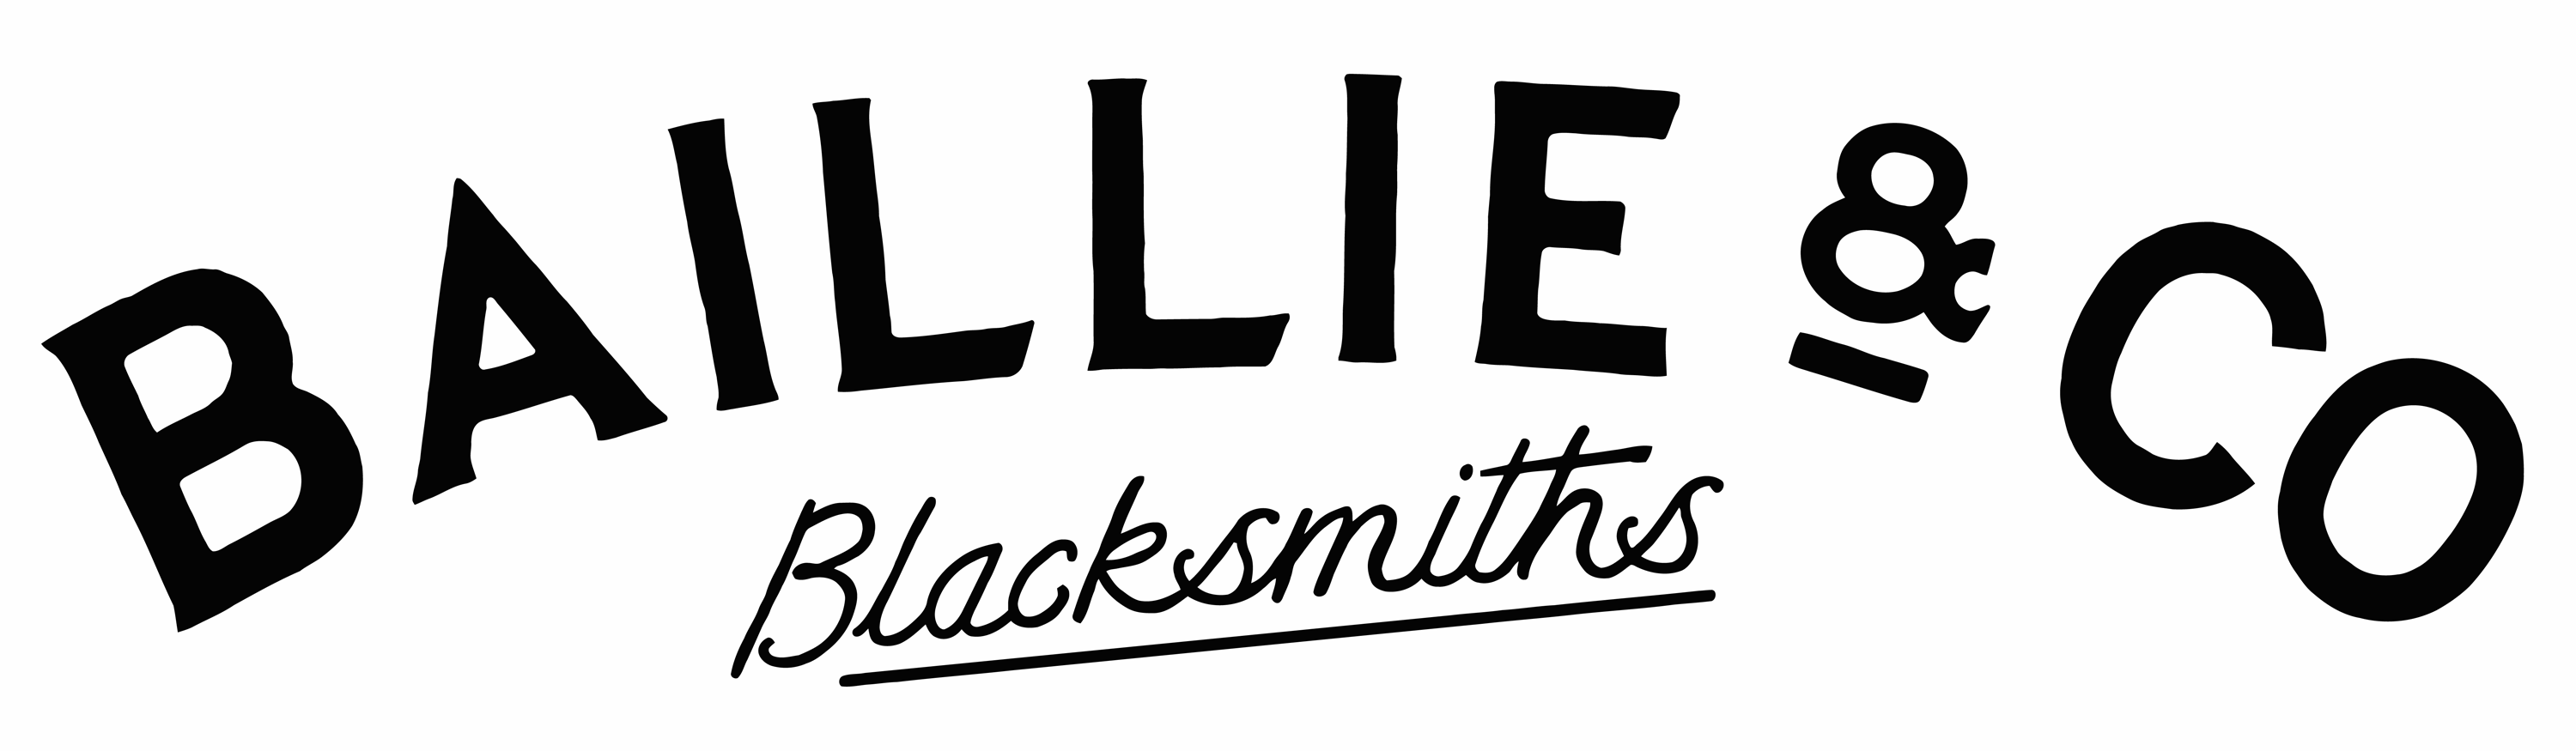 innovation Archives - Baillie & Co Blacksmiths